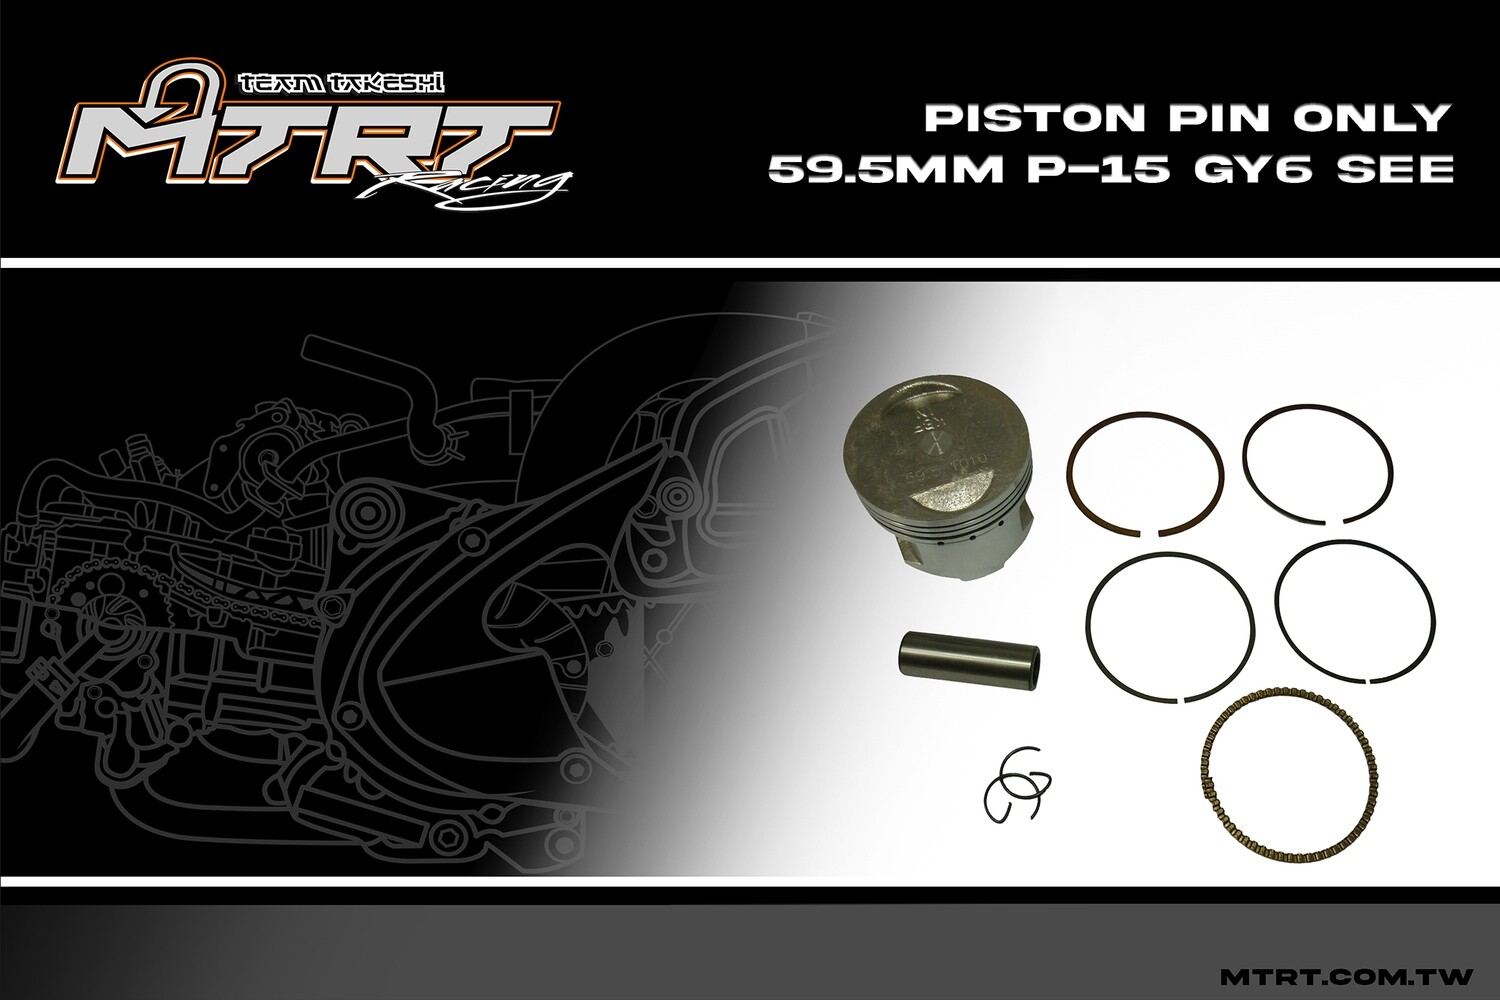 PISTON PIN ONLY 59.5MM  P-15 GY6 SEE